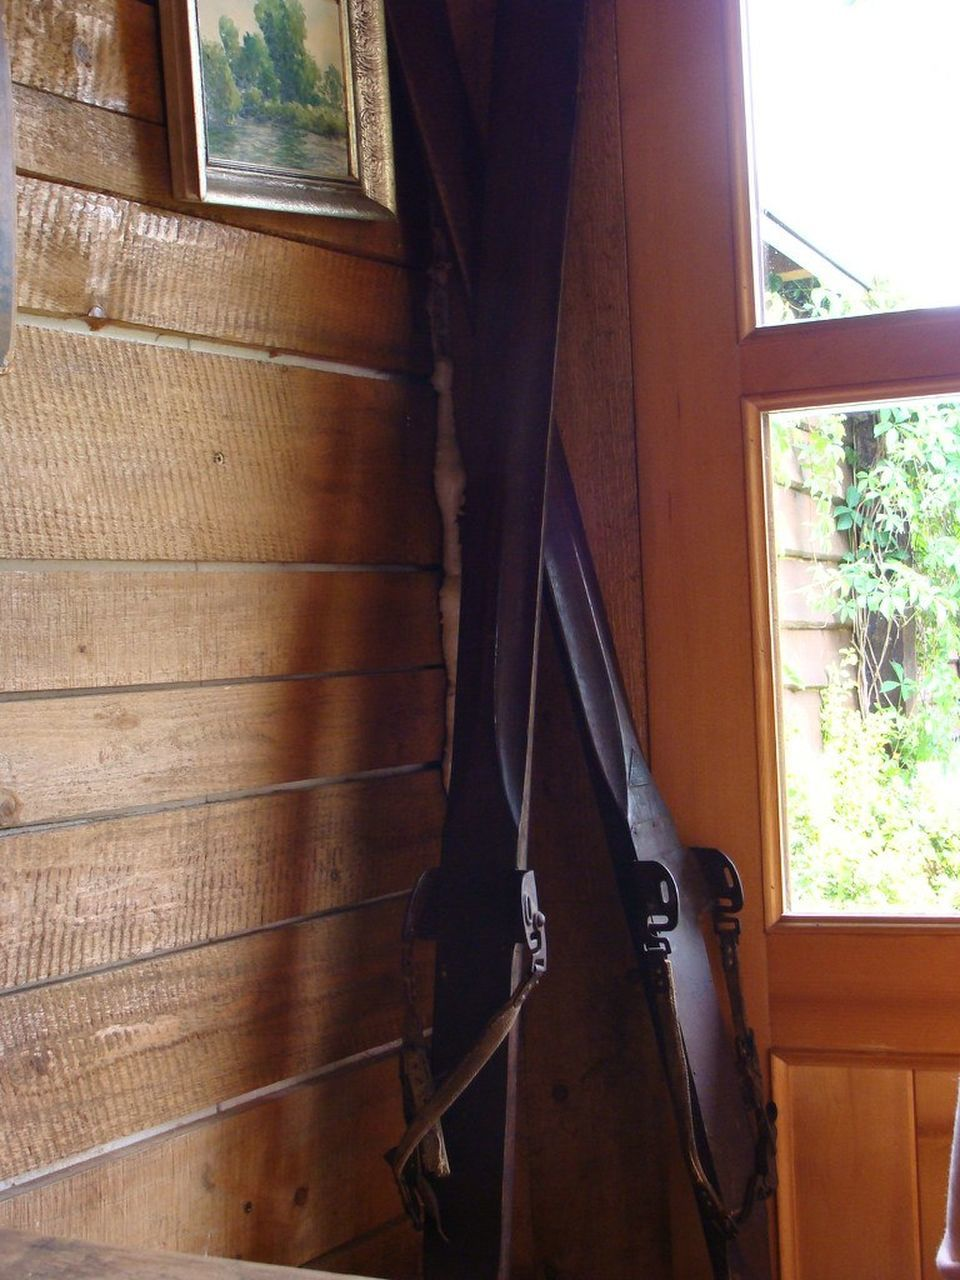 window, indoors, day, wood - material, curtain, no people, low section, close-up